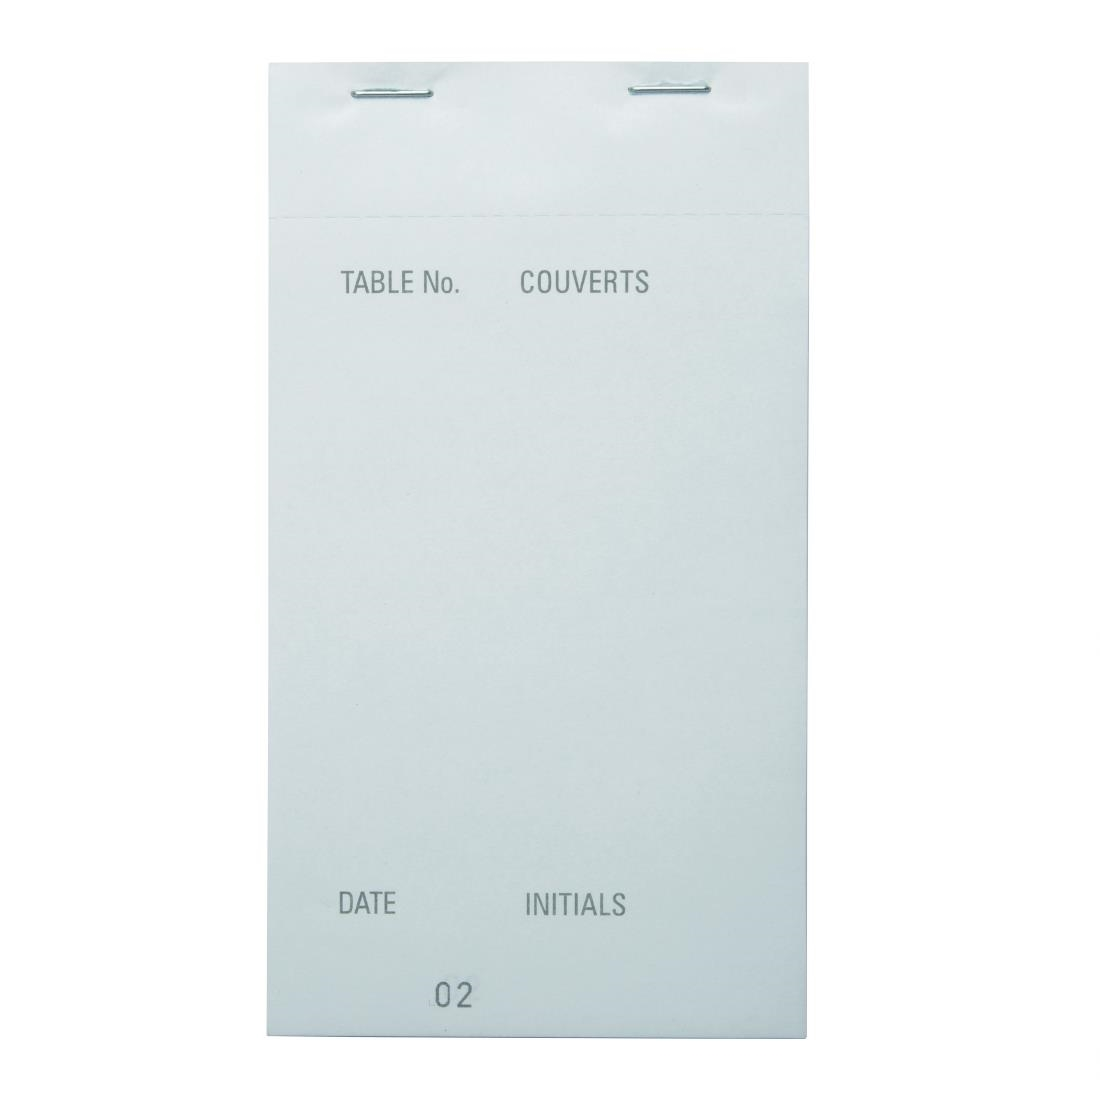 Image of Carbonless Waiter Pad Duplicate Large (Pack of 50) Pack of 50